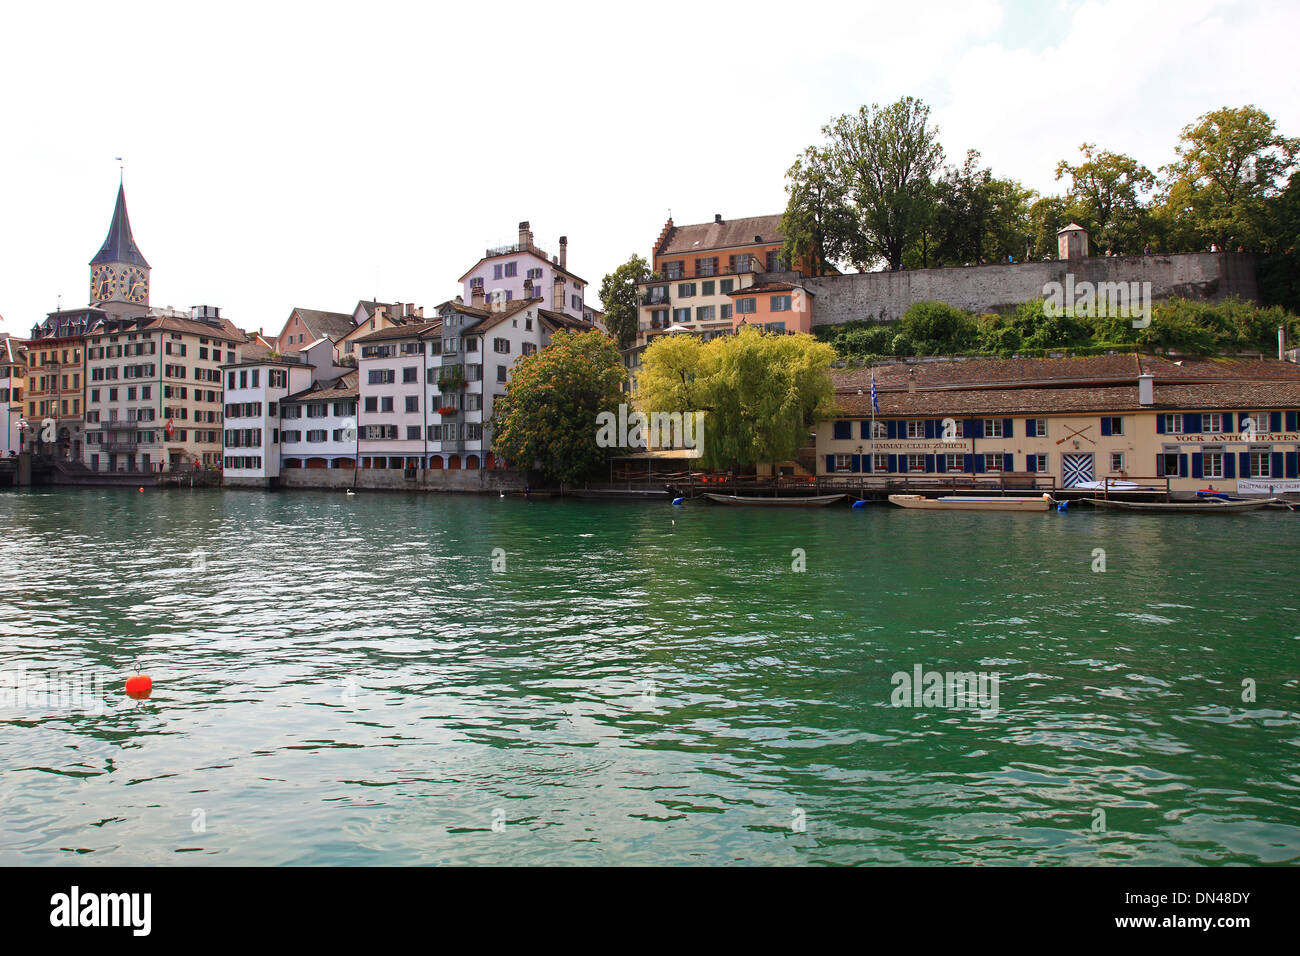 Switzerland, Zurich,old city and Limmat river. - Stock Image